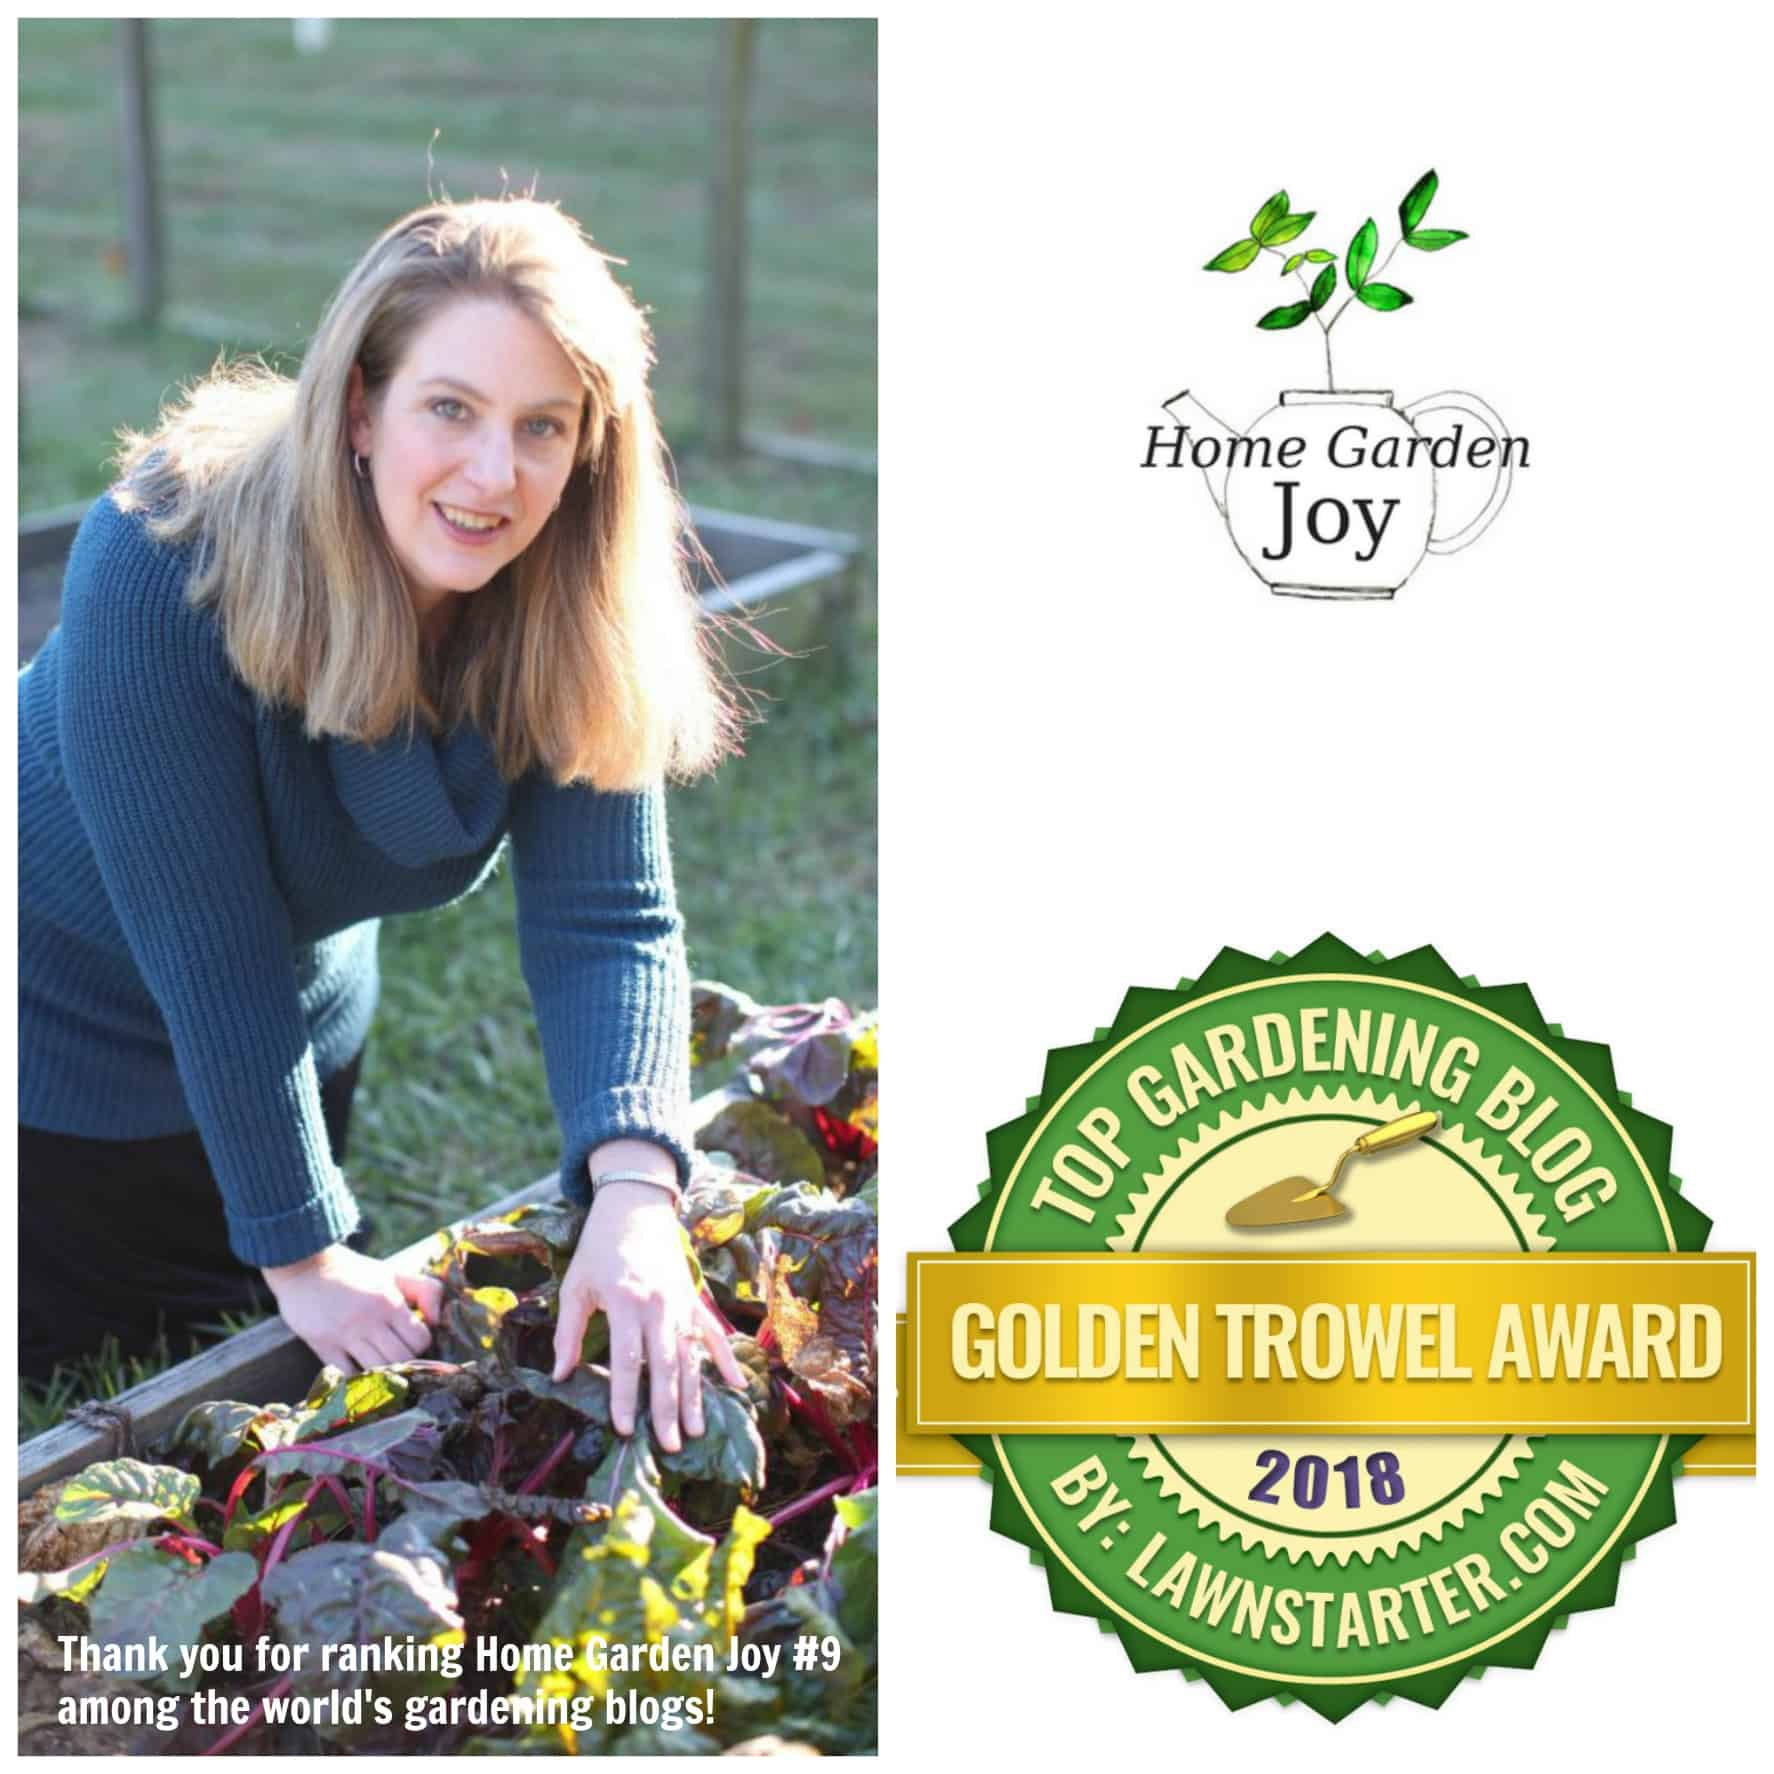 Home Garden Joy 2018 winner